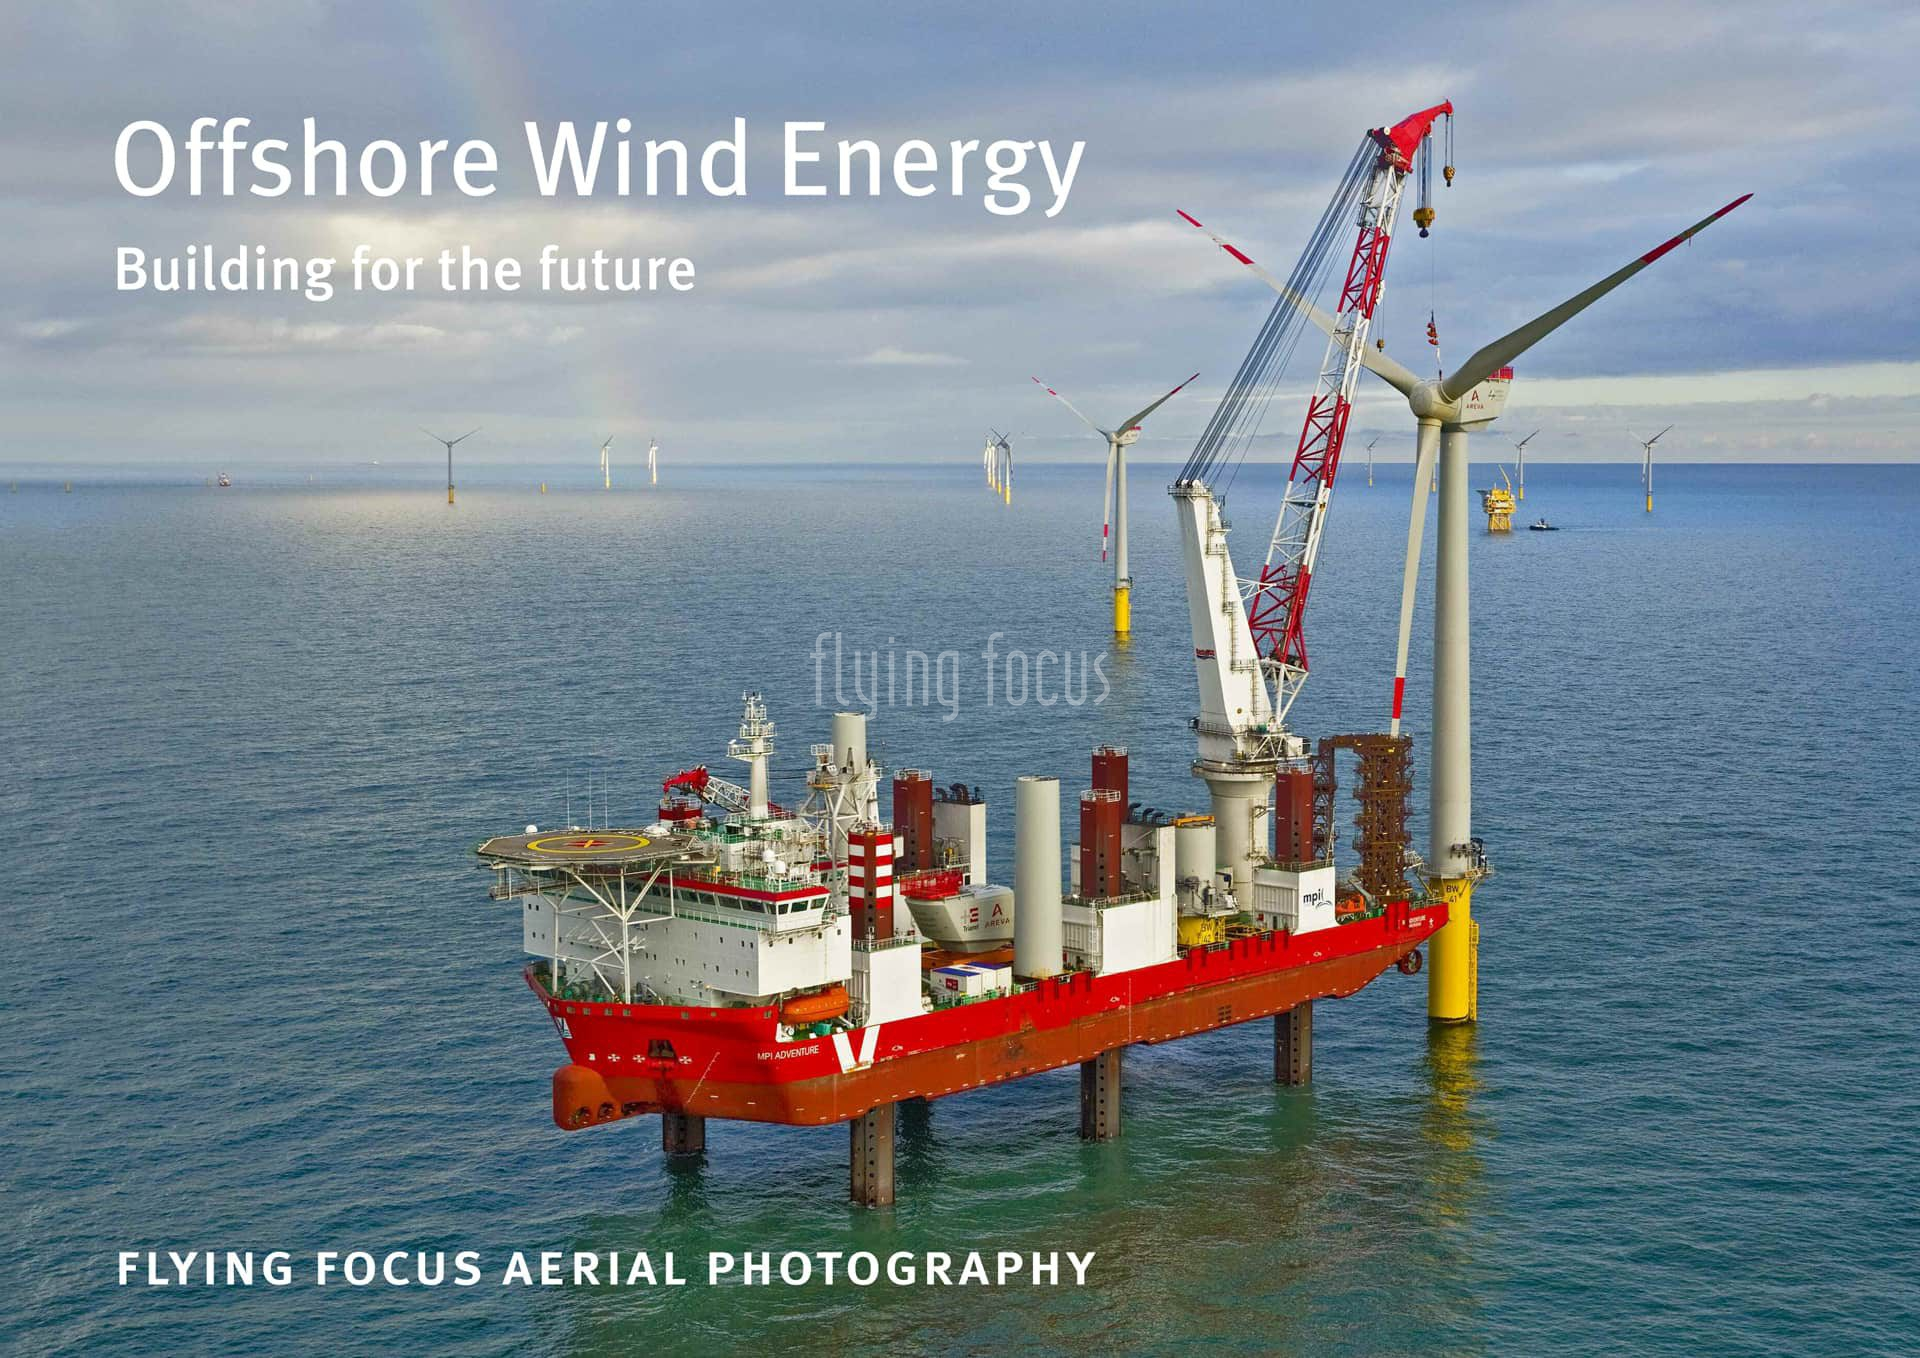 offshore wind energy thesis Thesis master's programme (60 credits) in renewable energy systems, 60   the lillgrund offshore wind farm is situated 7 km south of the.